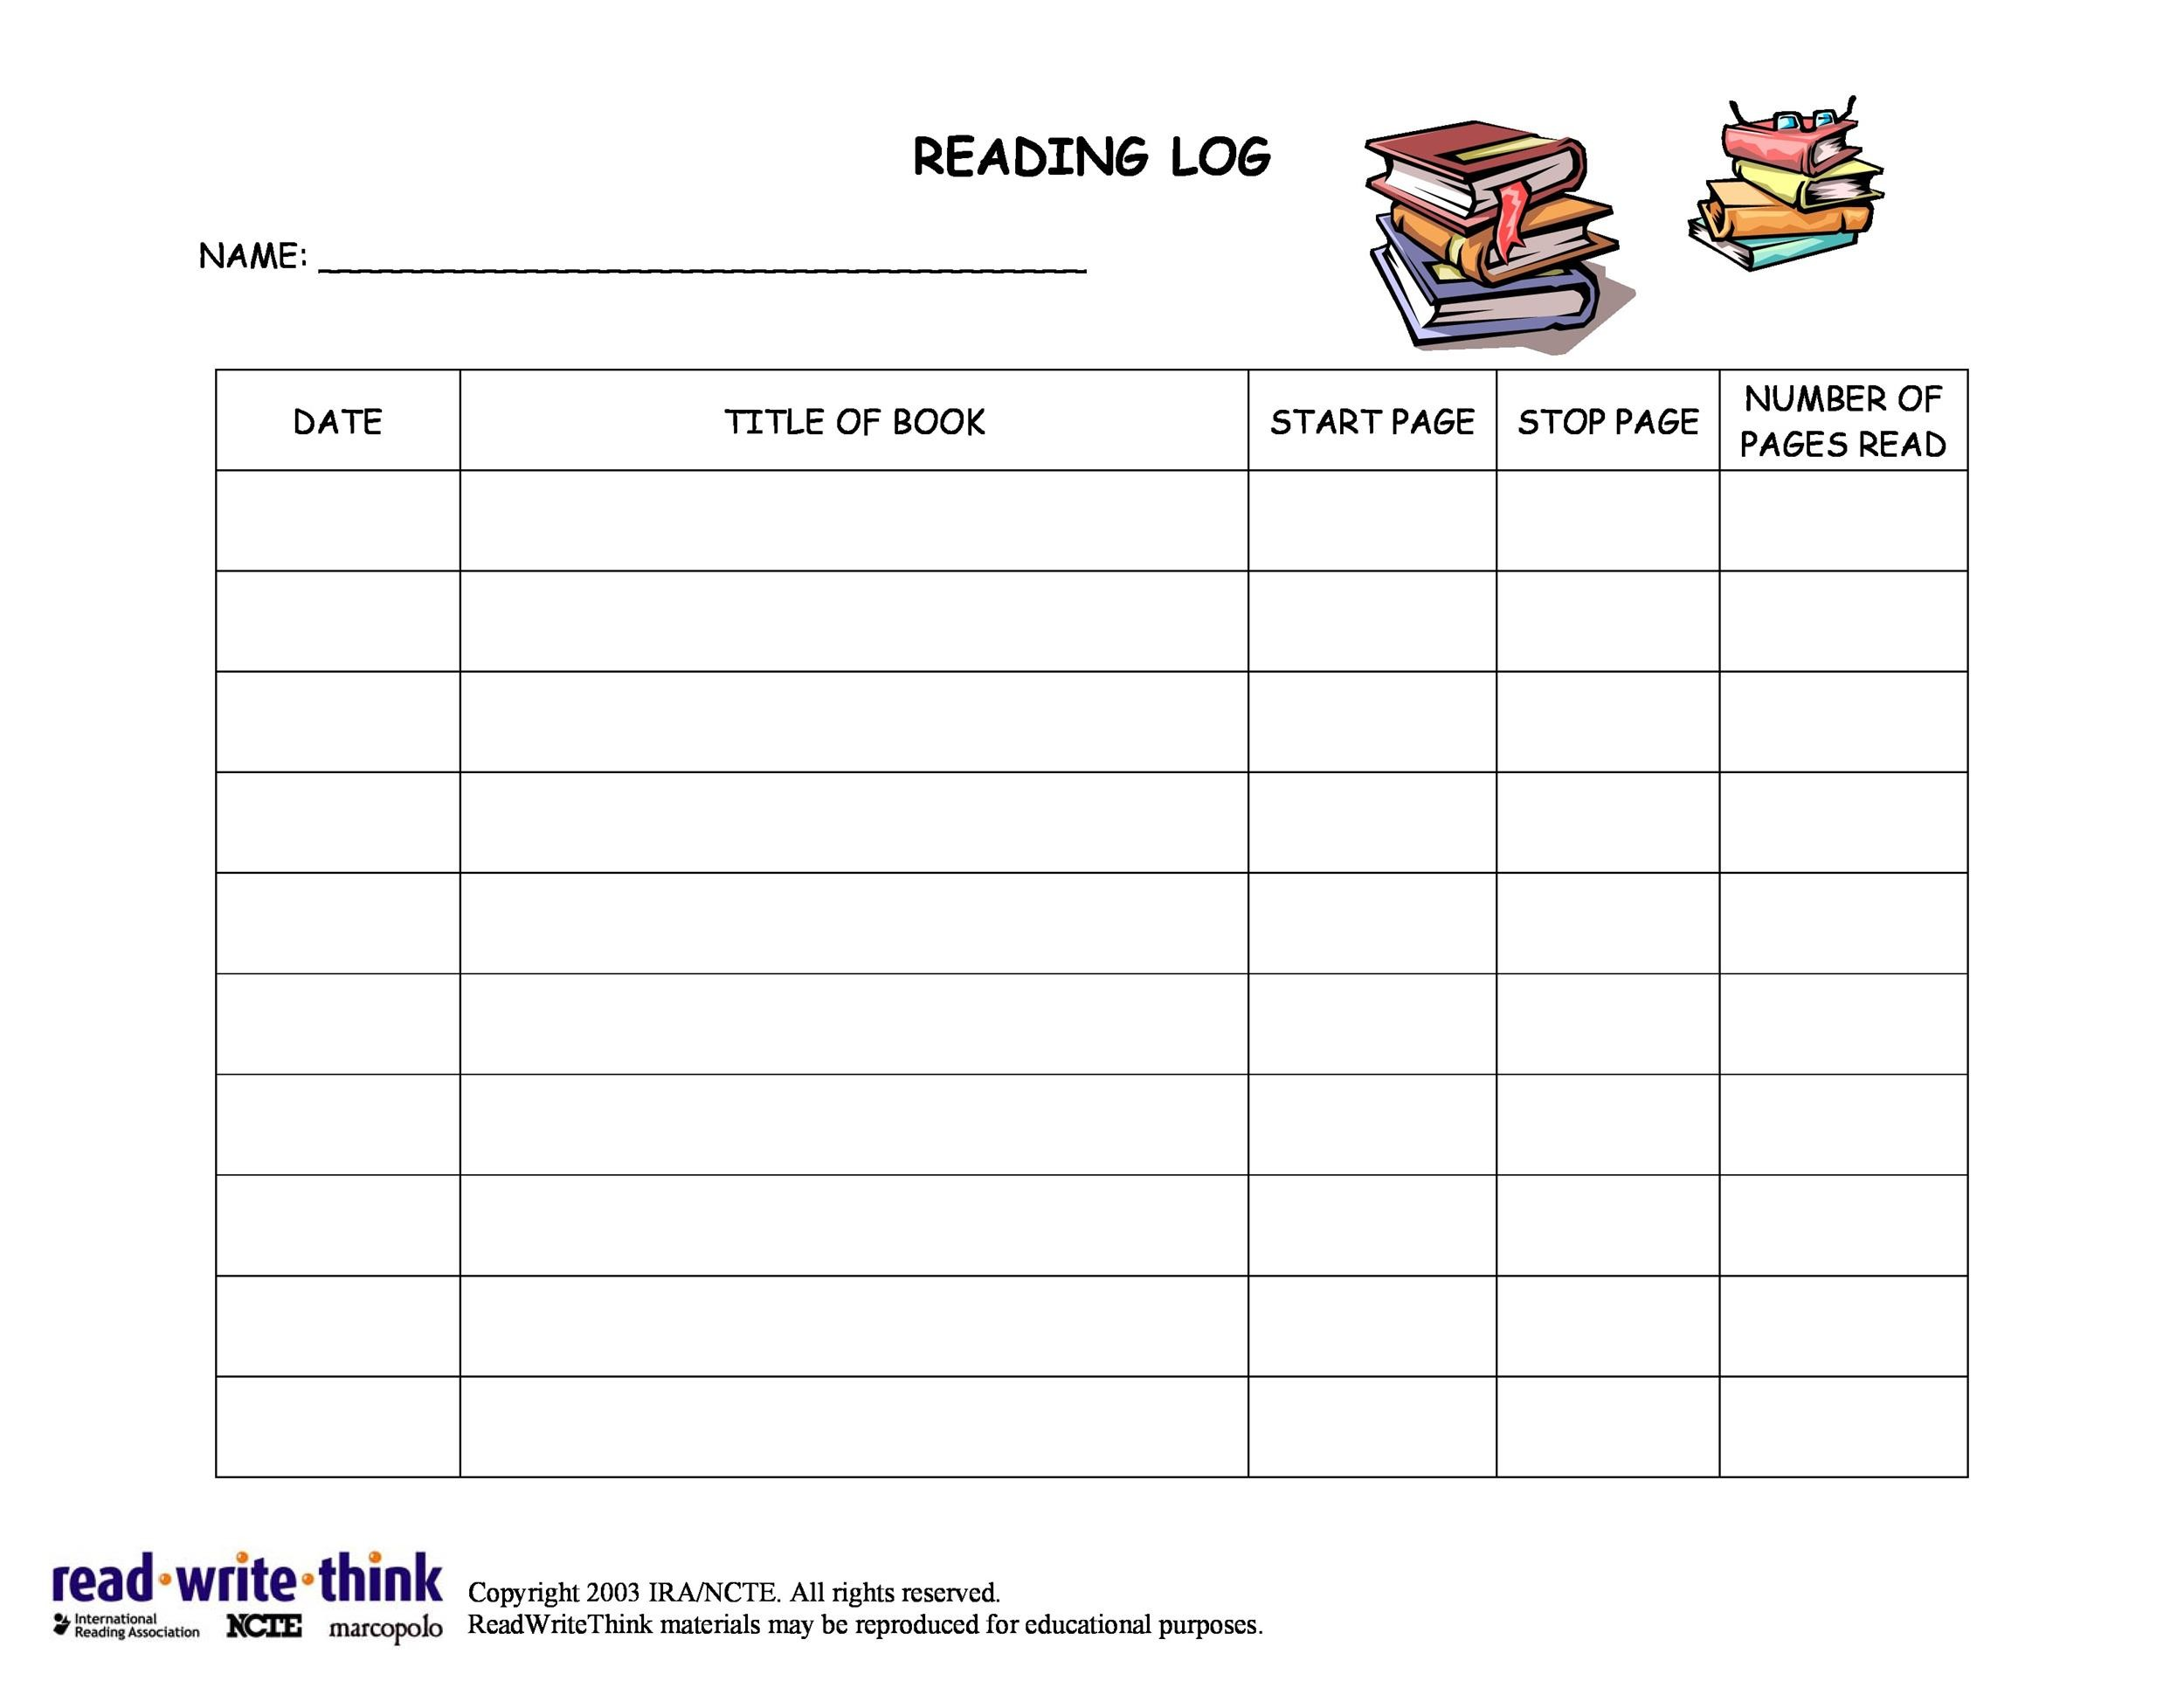 summer reading log template - daily reading log template middle school 15 best images